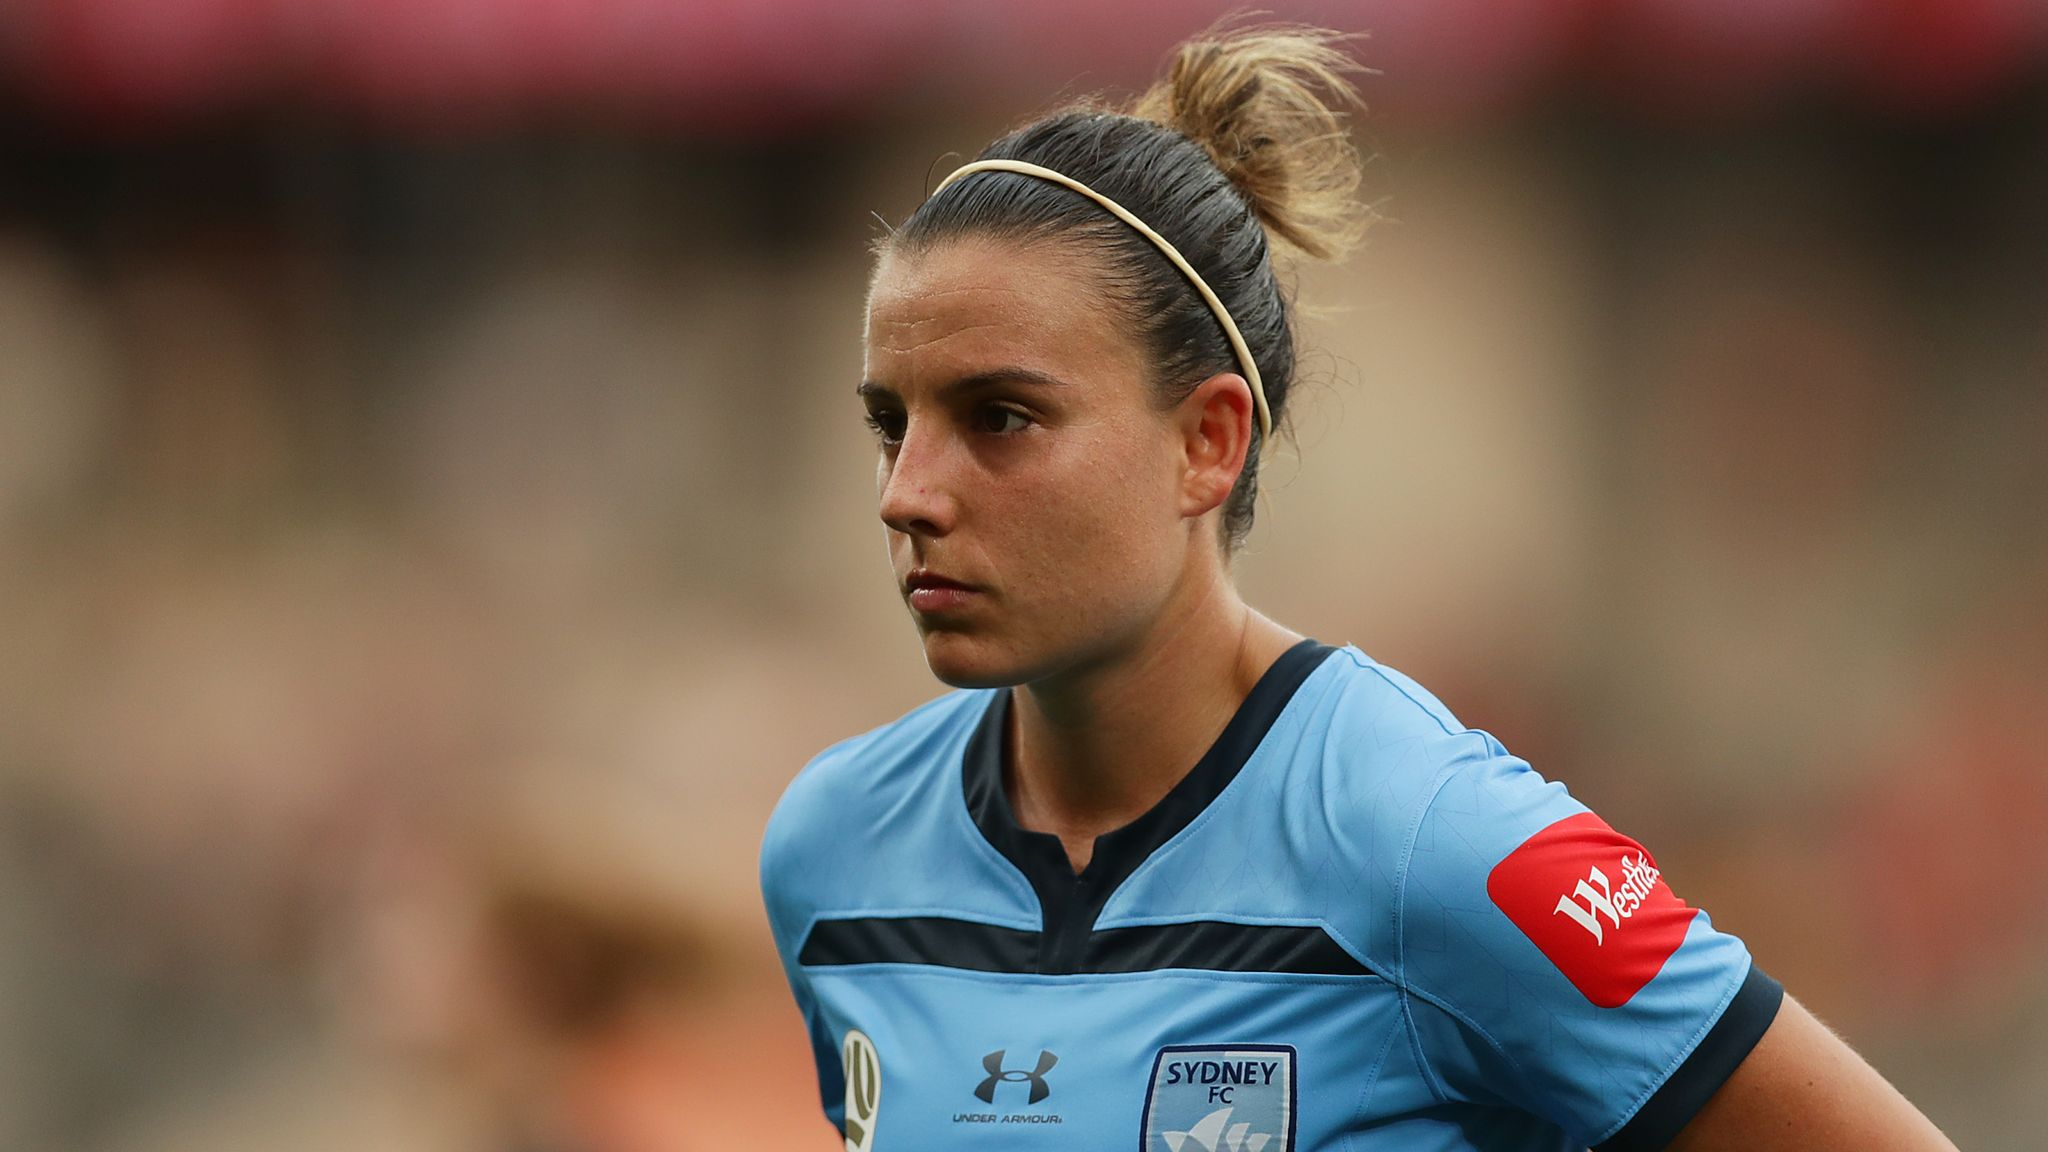 Liverpool Women sign goalkeeper Rylee Foster, who has 'You'll Never Walk Alone' tattoo